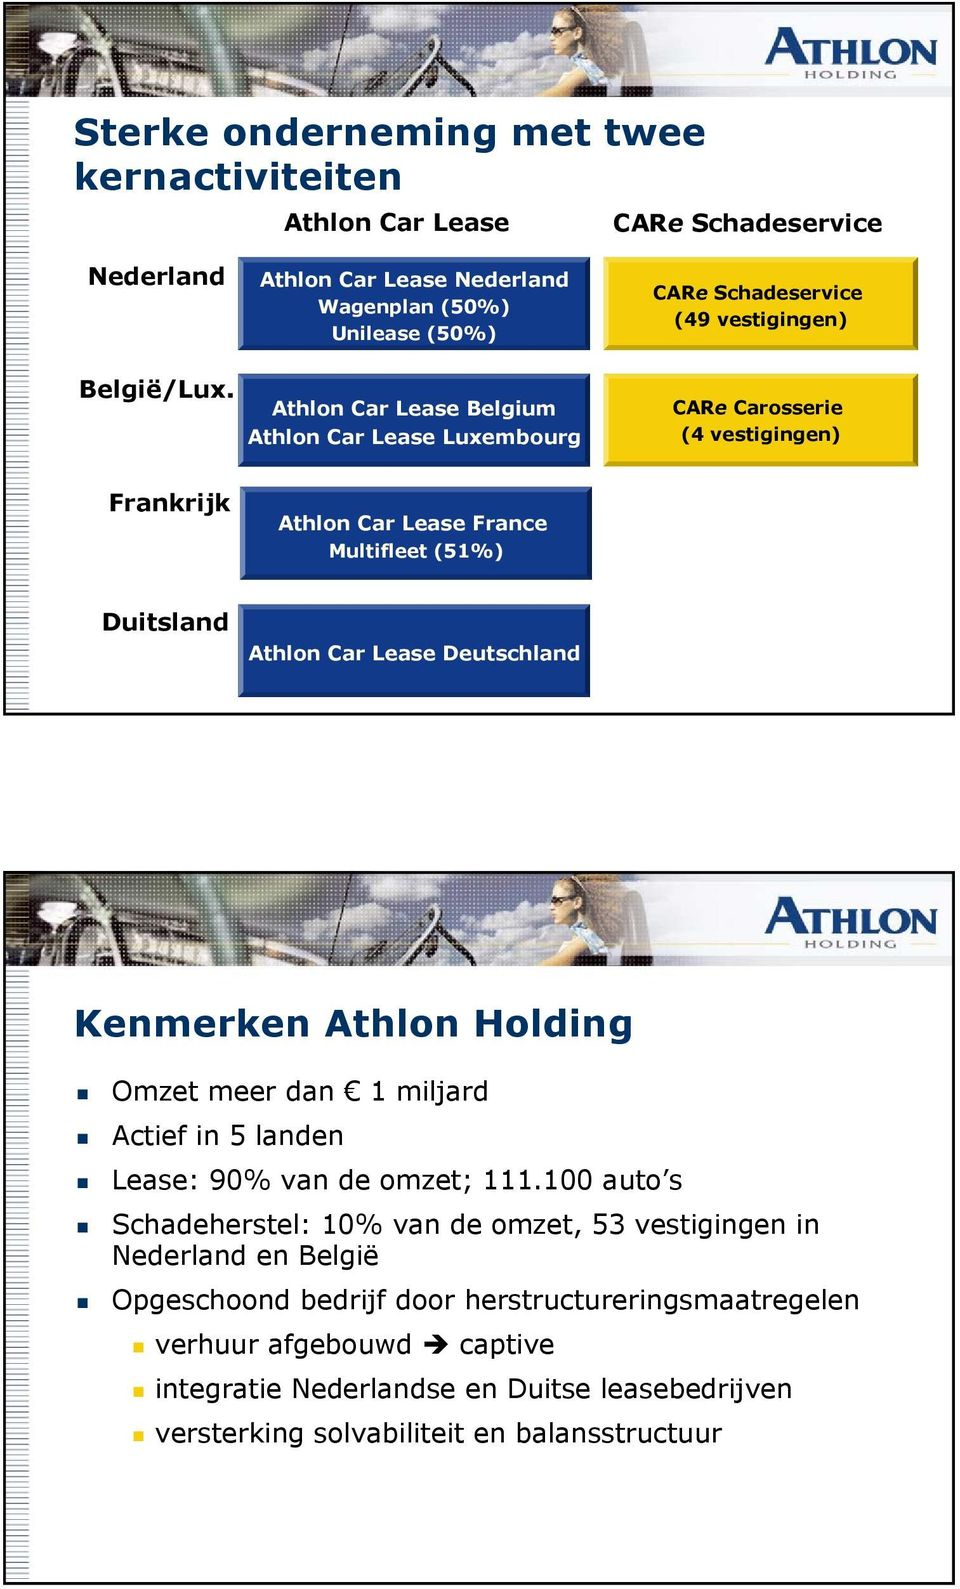 Athlon Car Lease Belgium Athlon Car Lease Luxembourg CARe Carosserie (4 vestigingen) Frankrijk Athlon Car Lease France Multifleet (51%) Duitsland Athlon Car Lease Deutschland